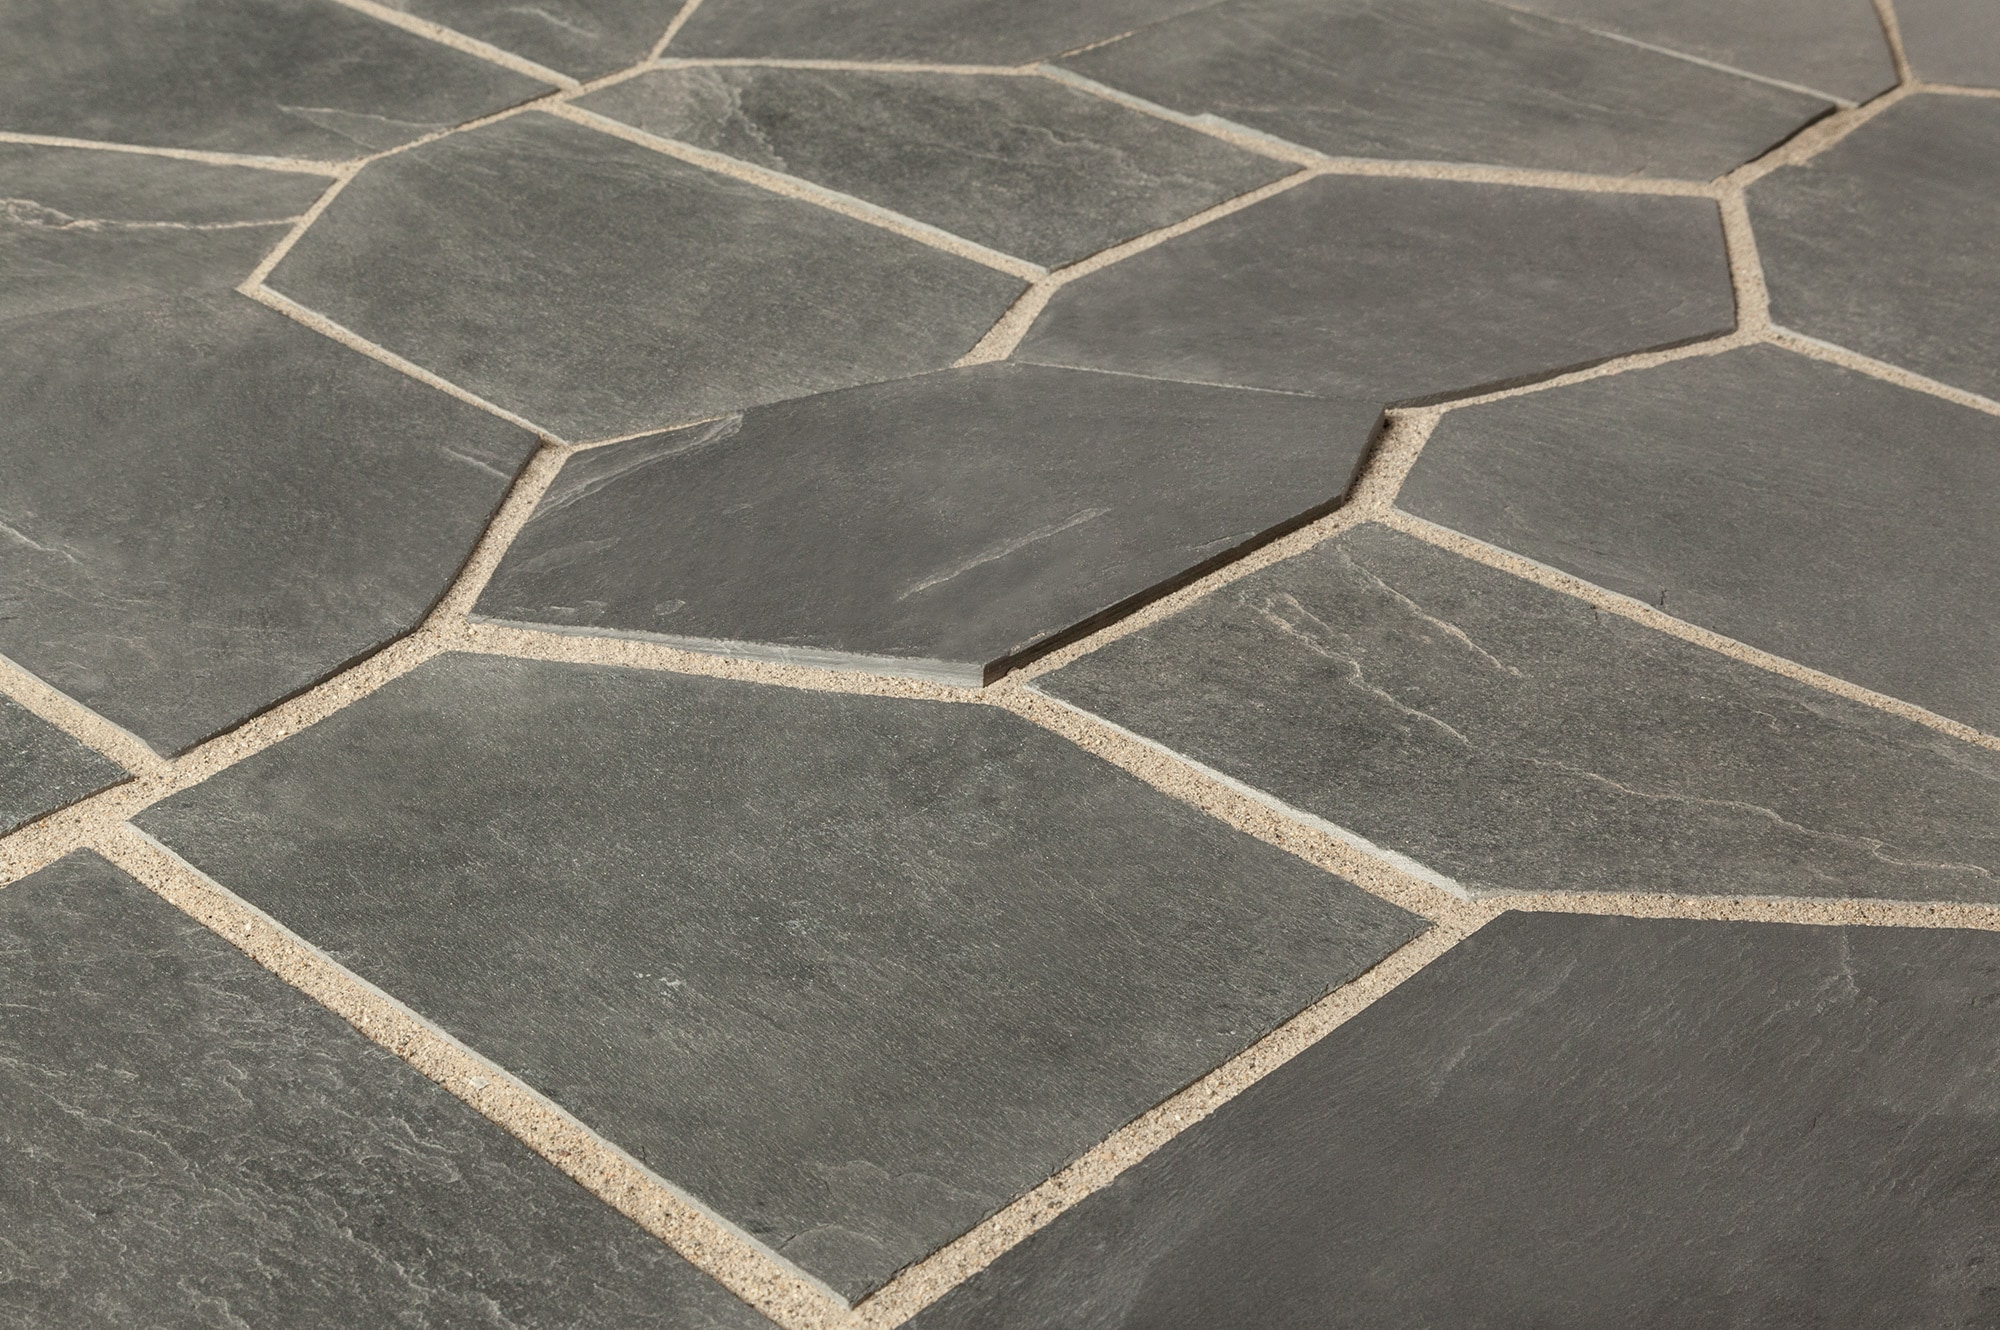 Roterra slate tile meshed back patterns silver black flag stone pattern Slate tile flooring